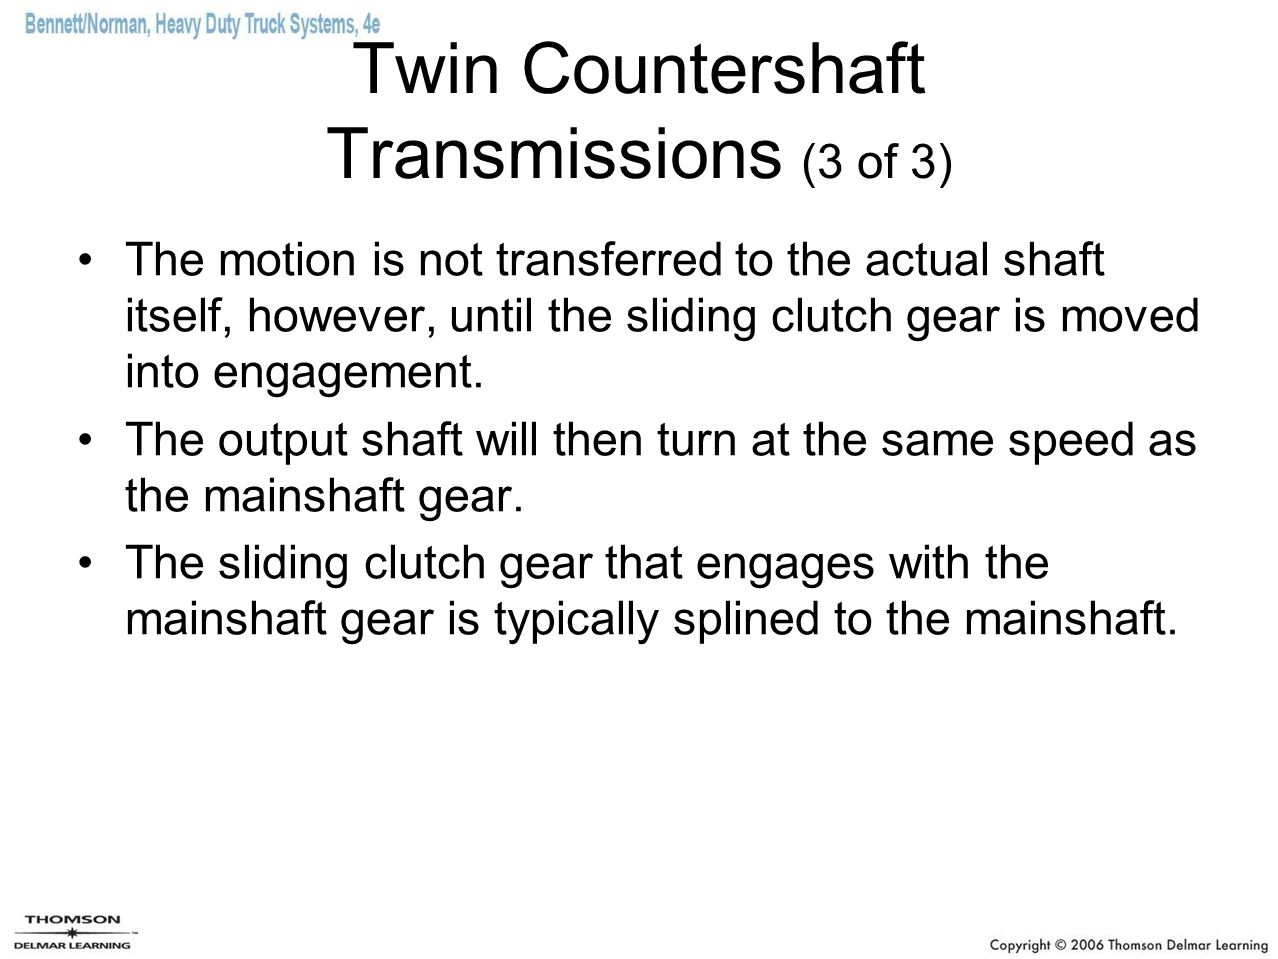 Twin Countershaft Transmissions (3 of 3)